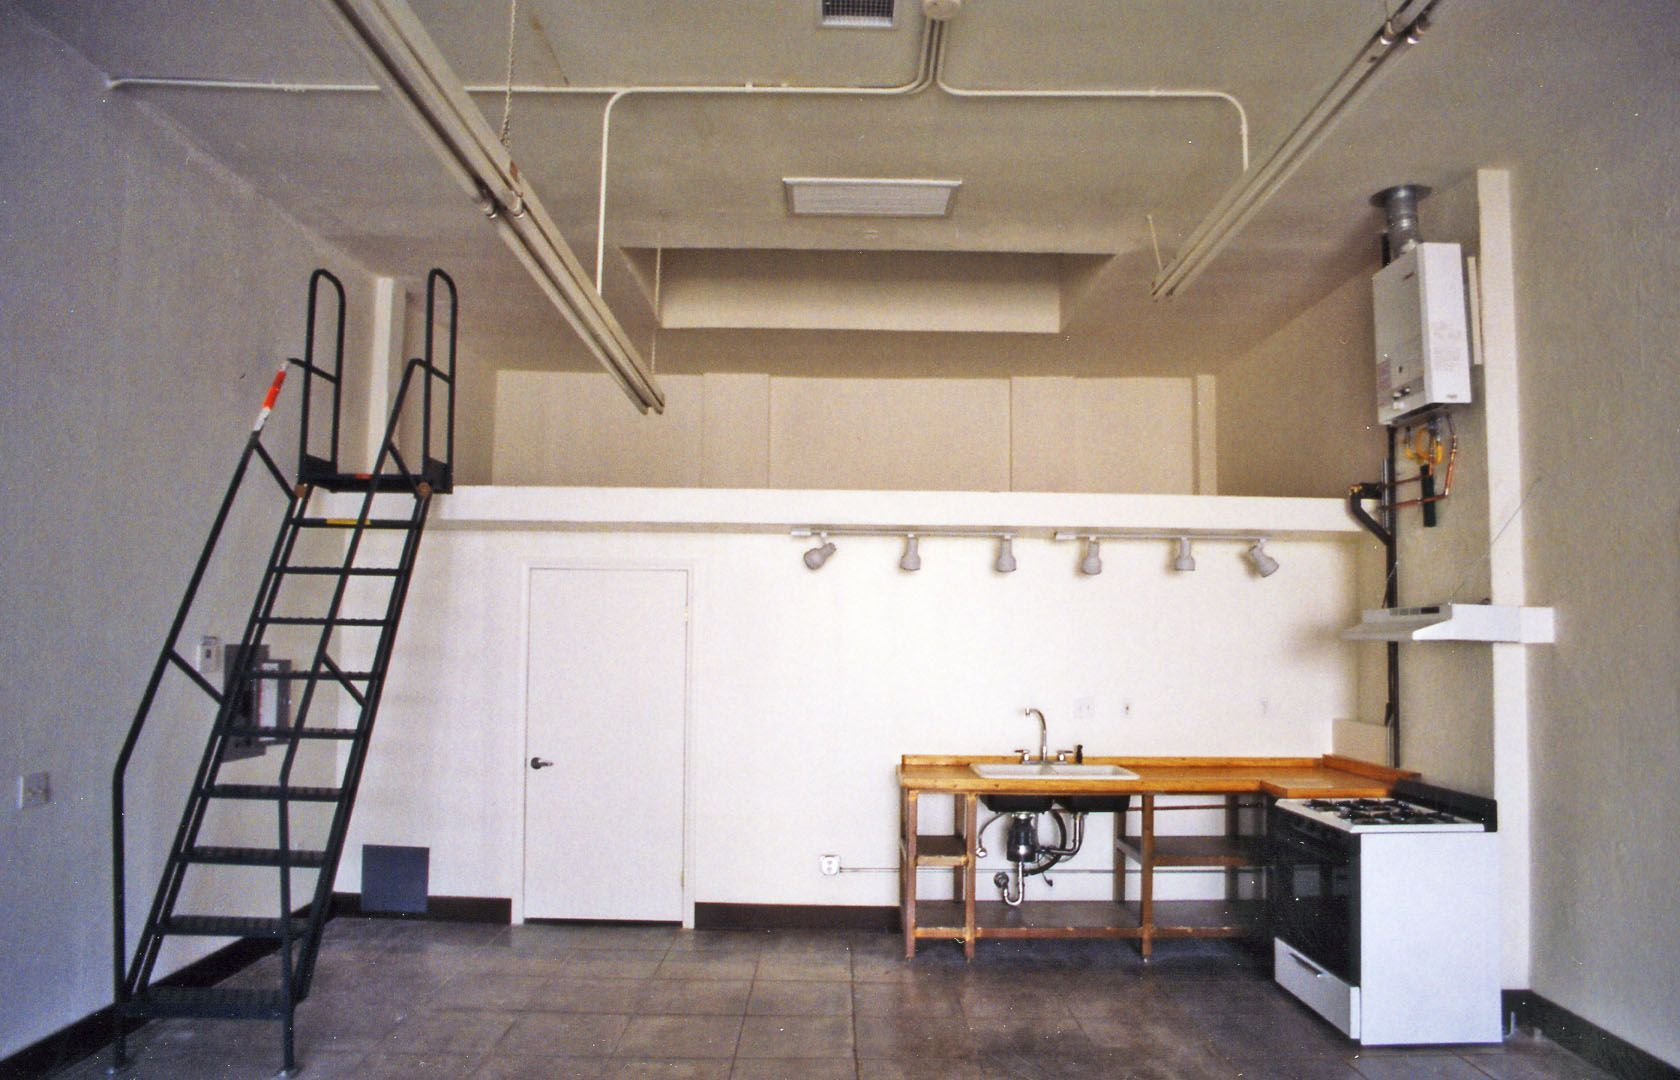 Ontario Art Lofts- Live/Work Loft for Rent, Downtown Ontario